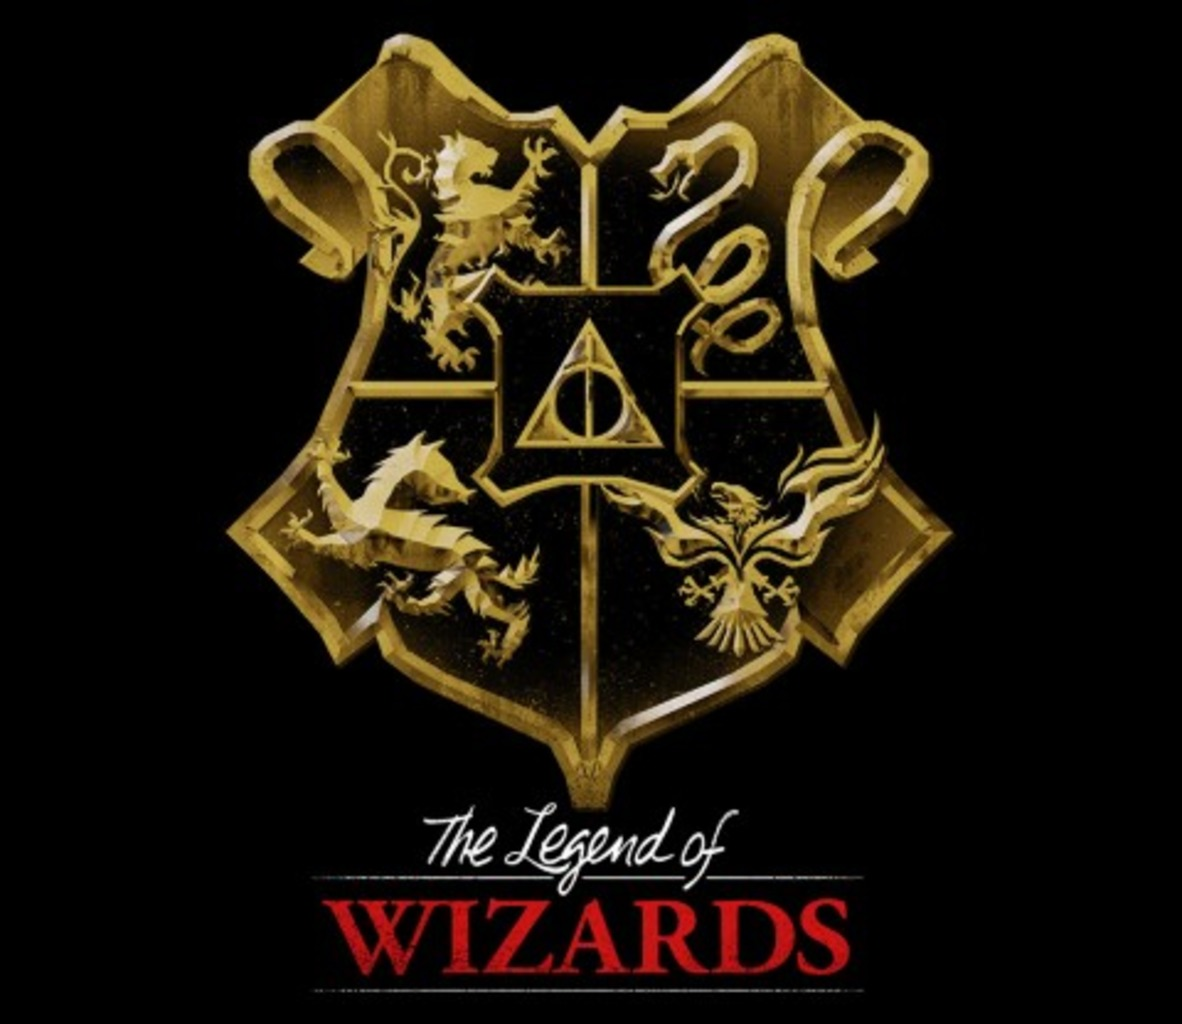 TeeFury: The Legend of Wizards